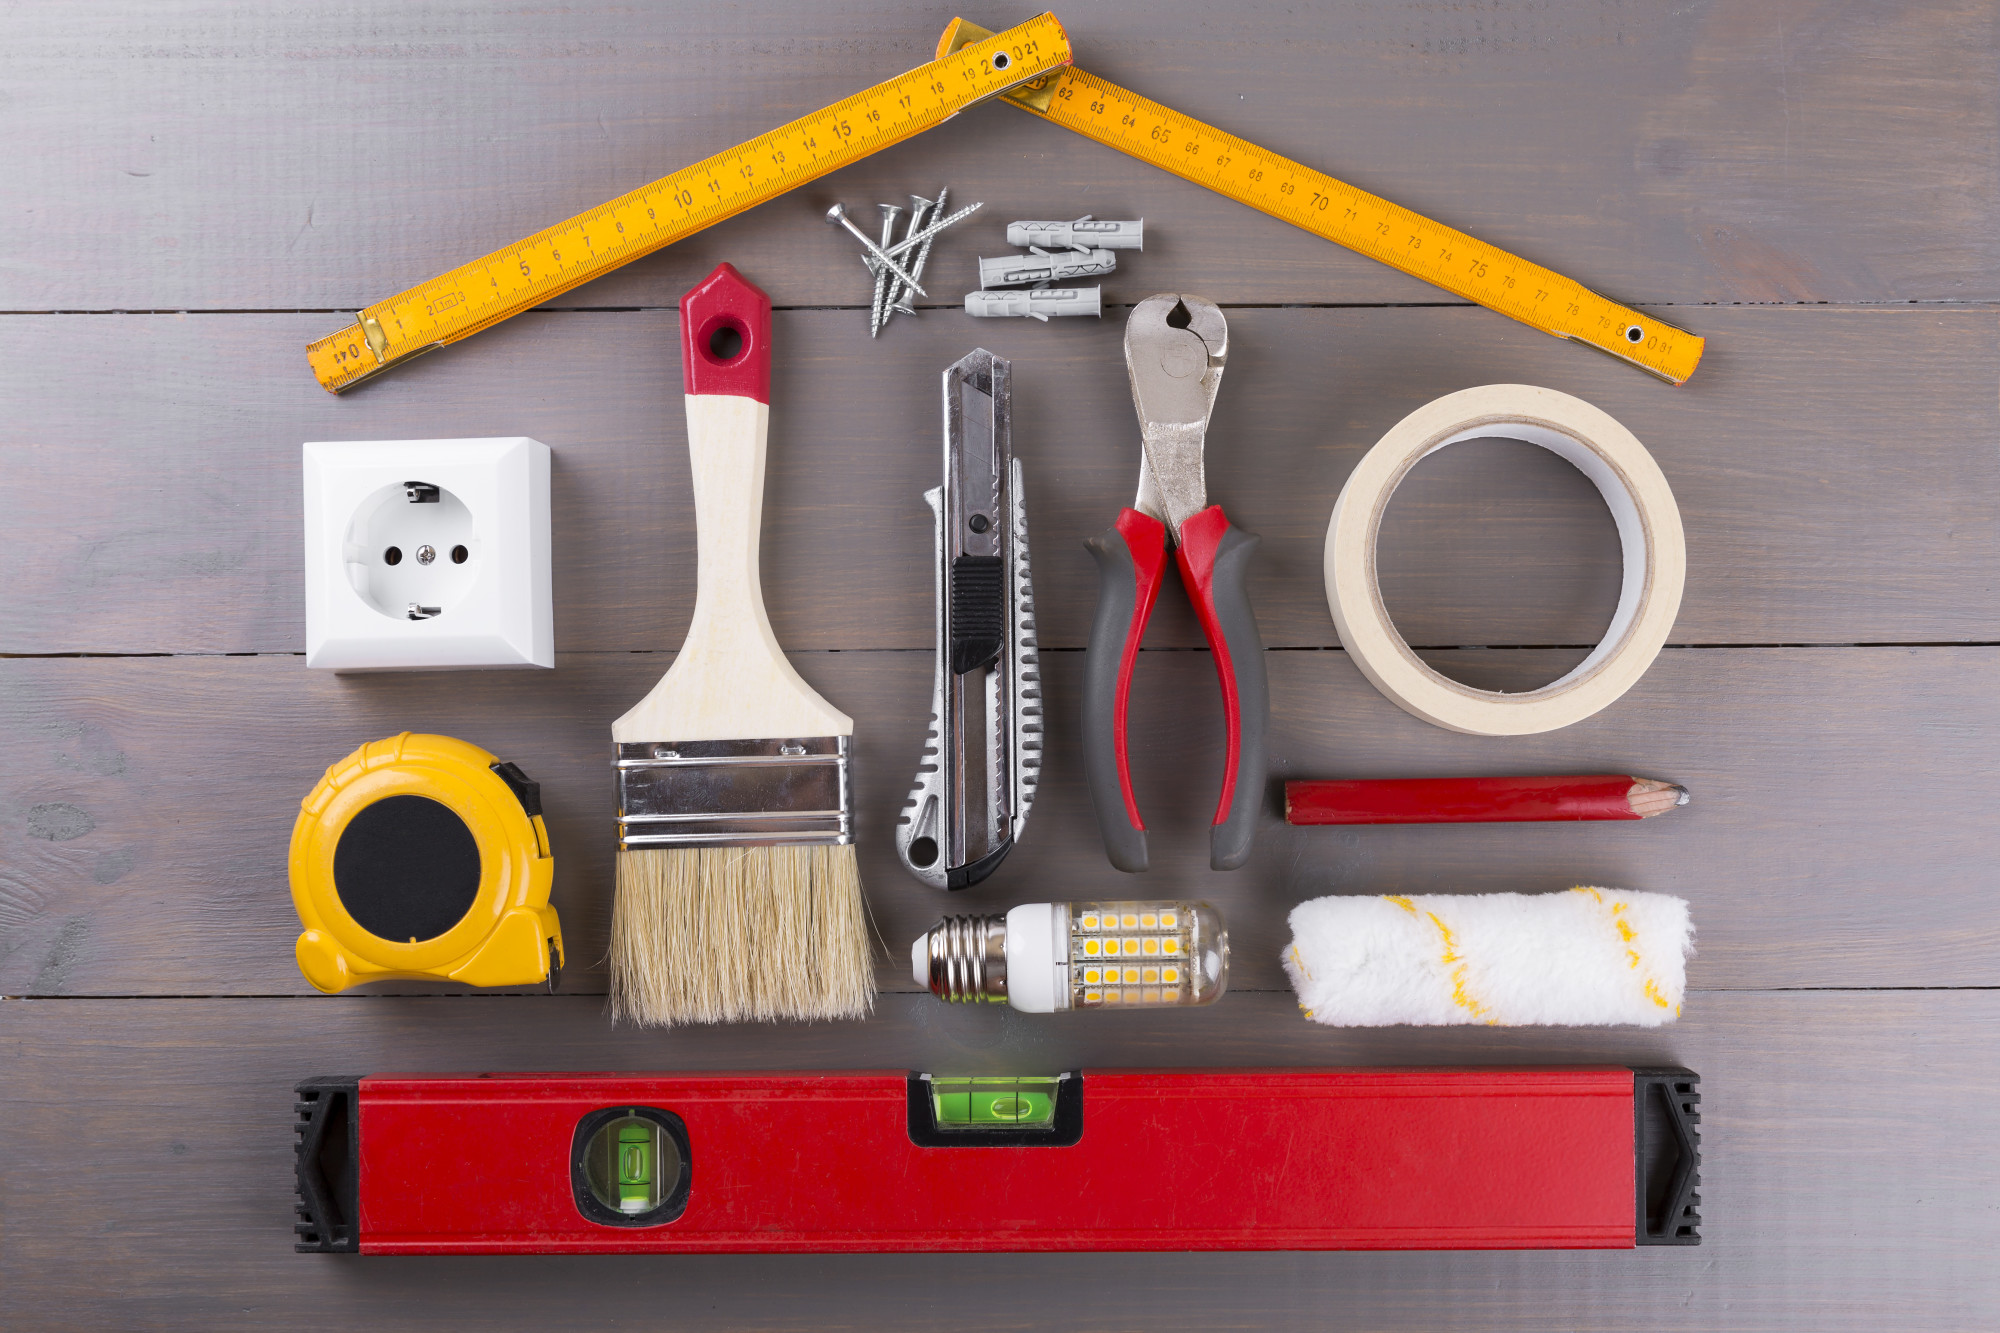 Homeowner's Plan for a Full Year Home Maintenance Schedule